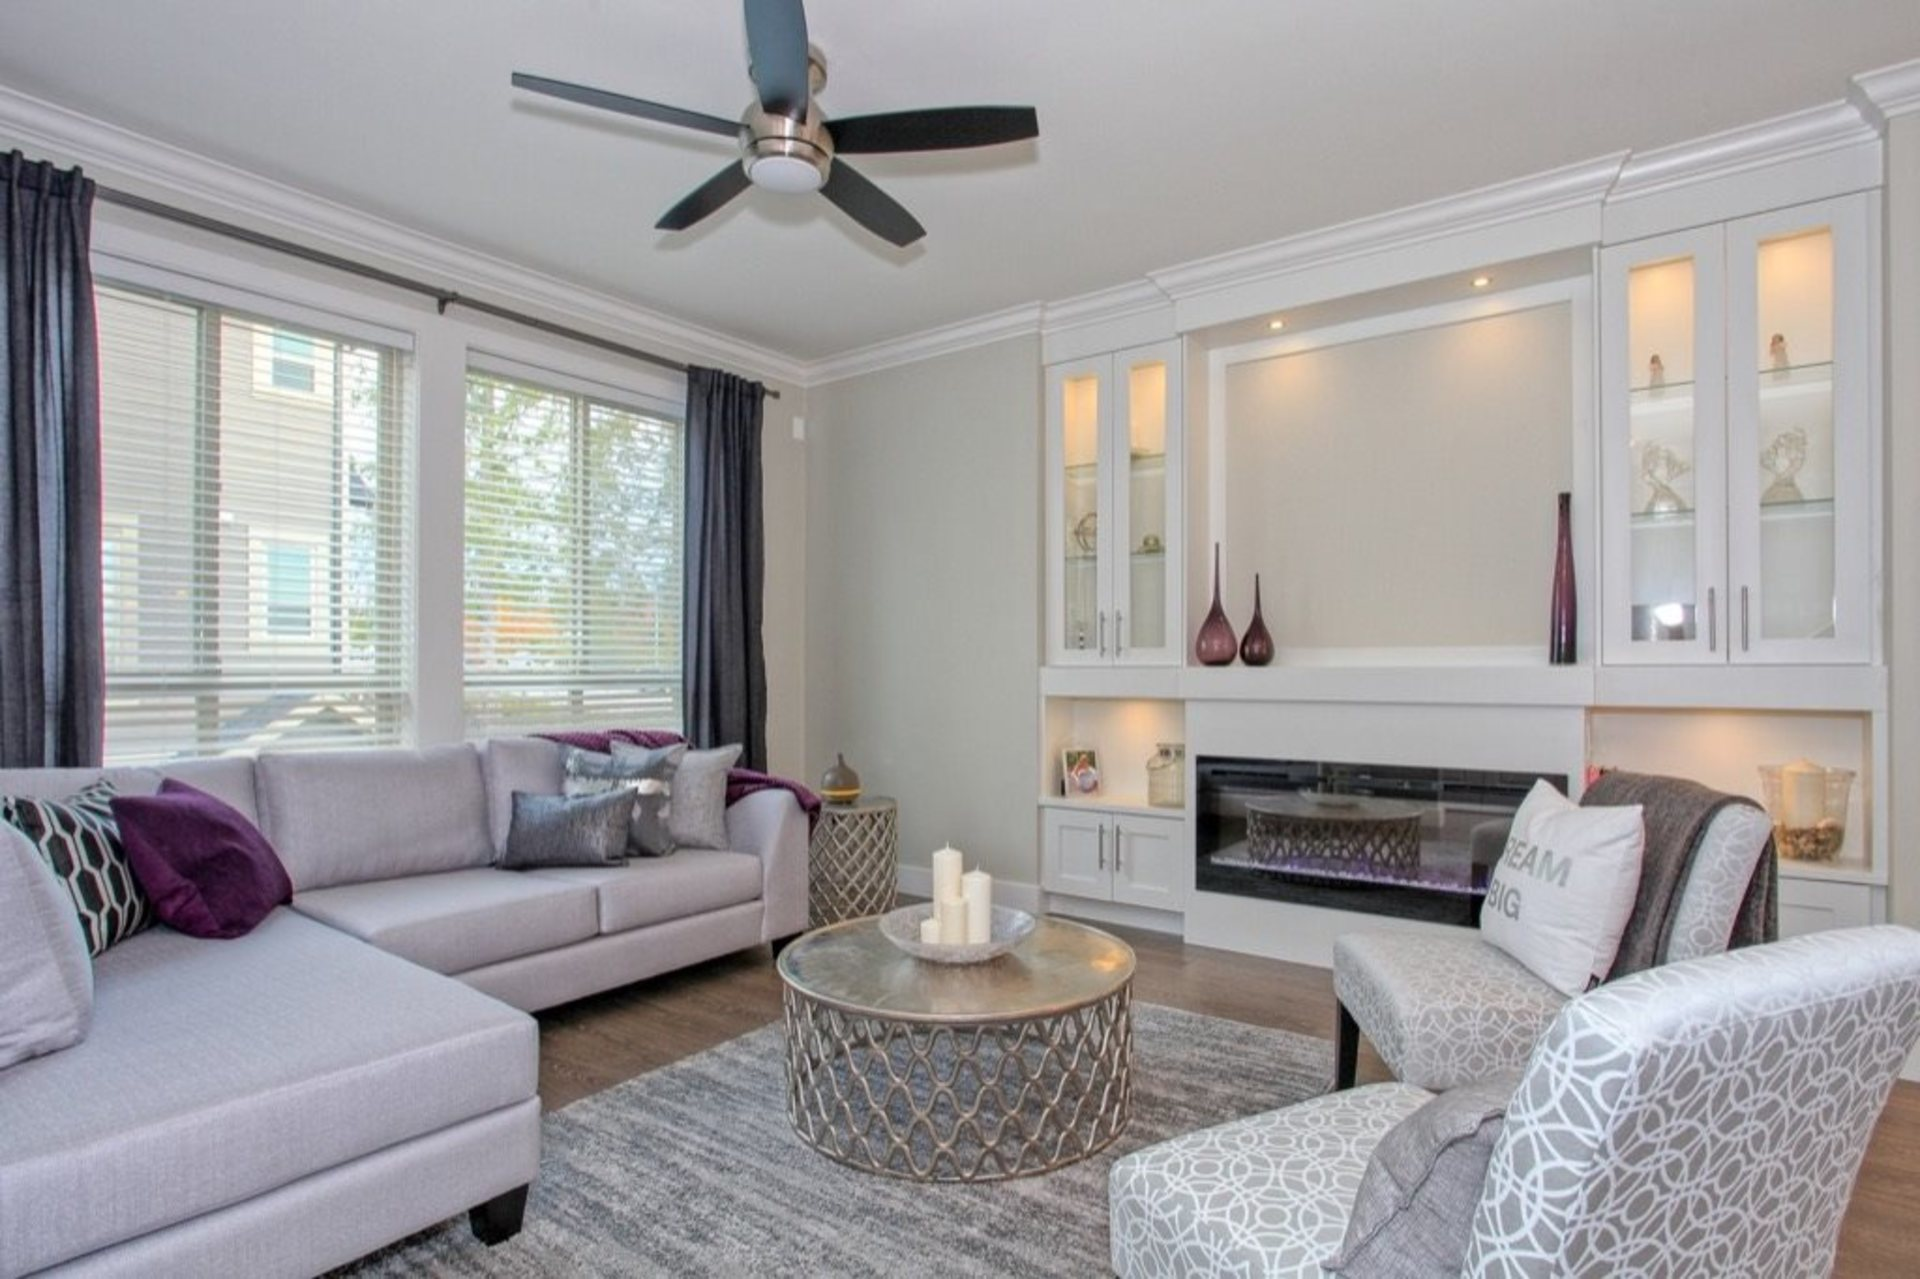 262143084-1 at 41 - 19913 70 Avenue, Willoughby Heights, Langley